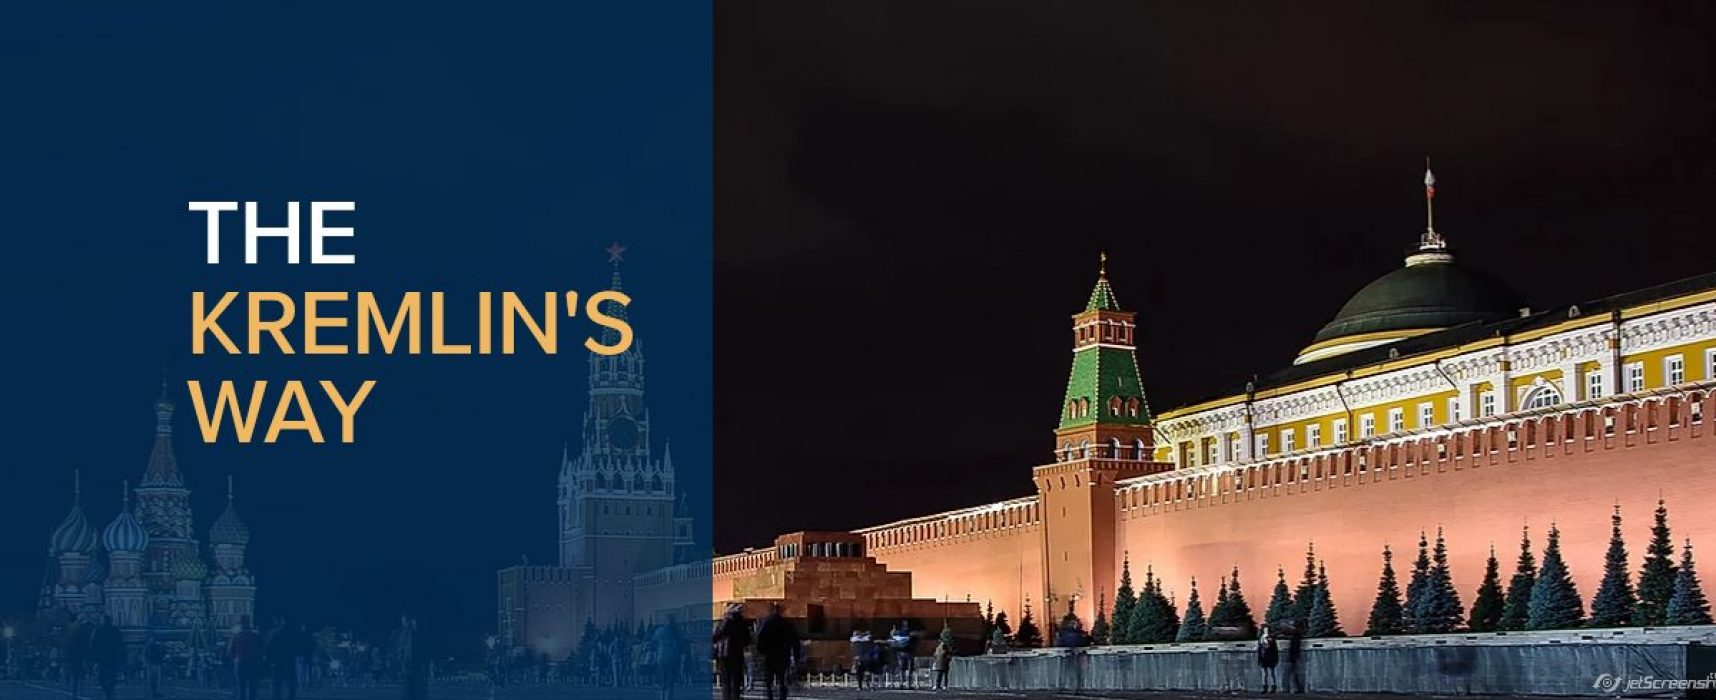 Edward Lucas: The Kremlin's way